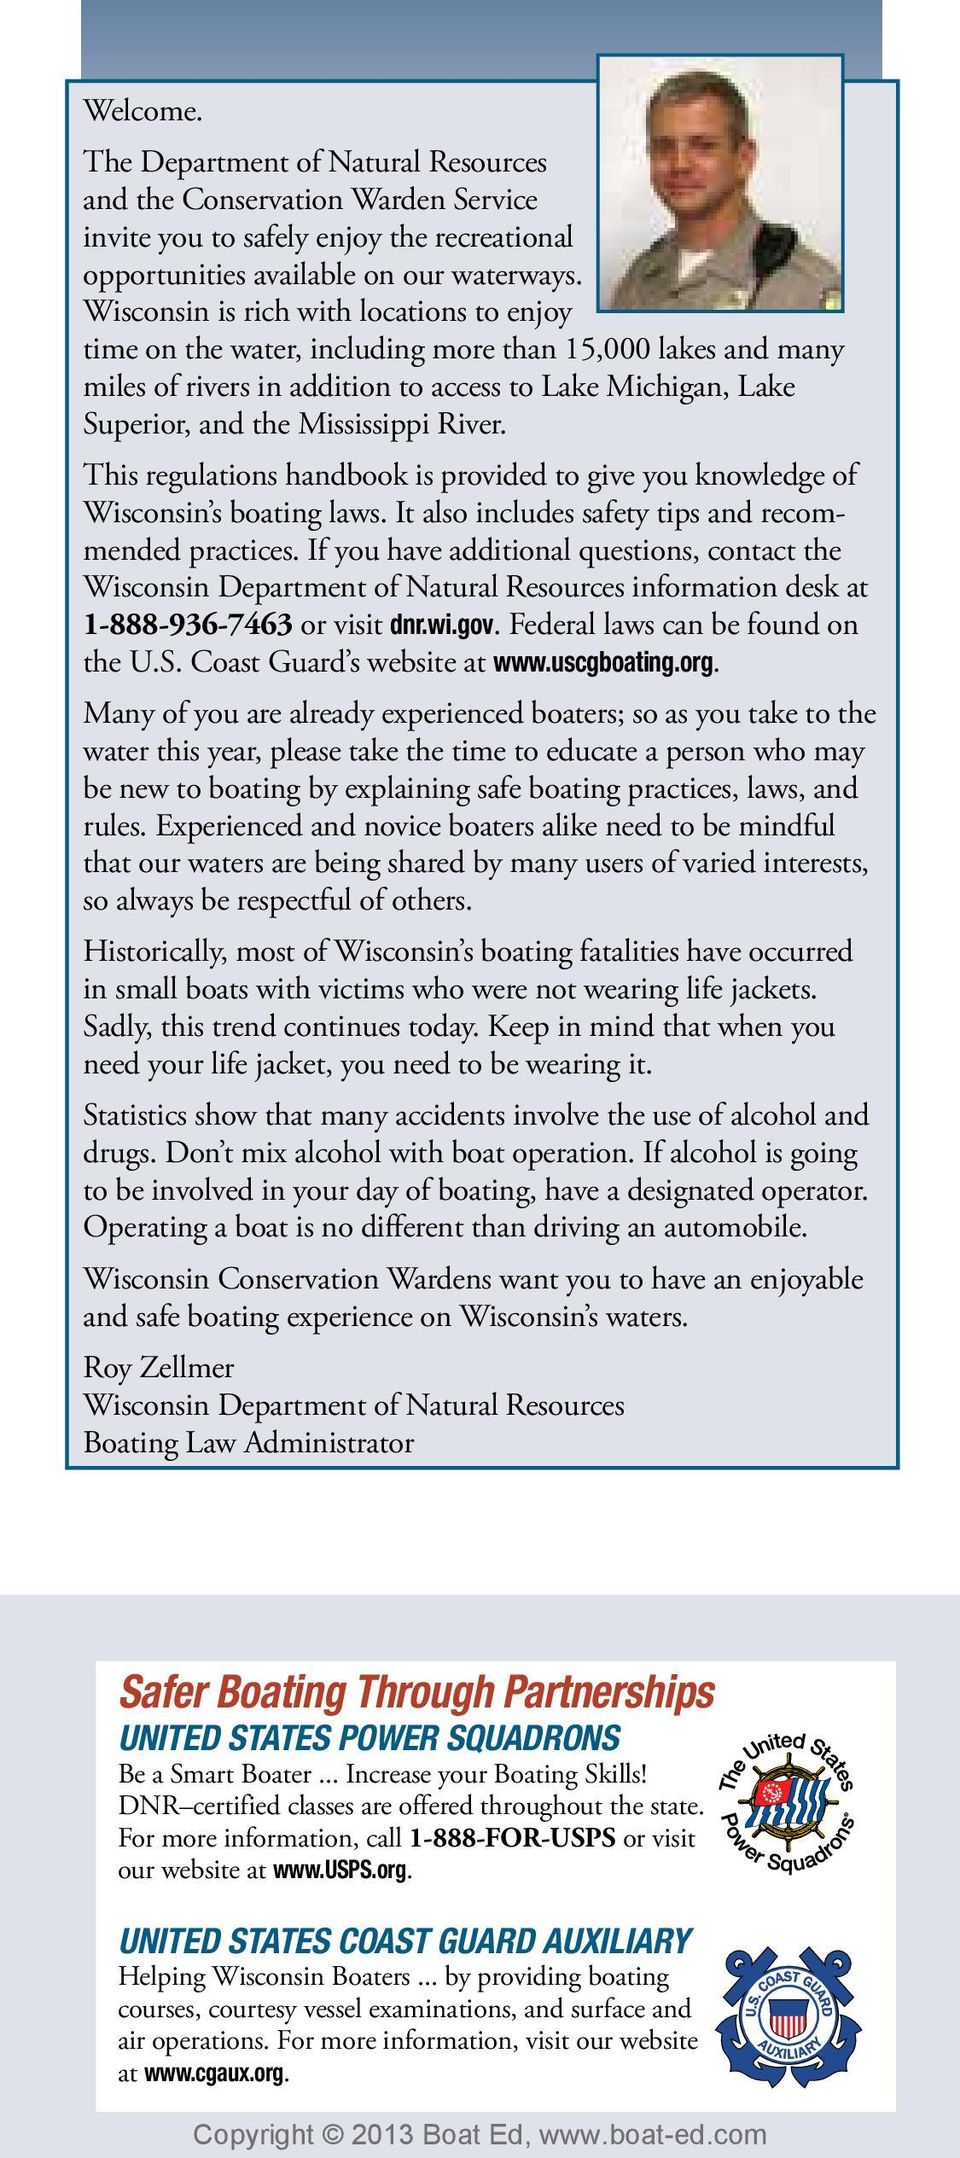 This regulations handbook is provided to give you knowledge of Wisconsin s boating laws. It also includes safety tips and recommended practices.